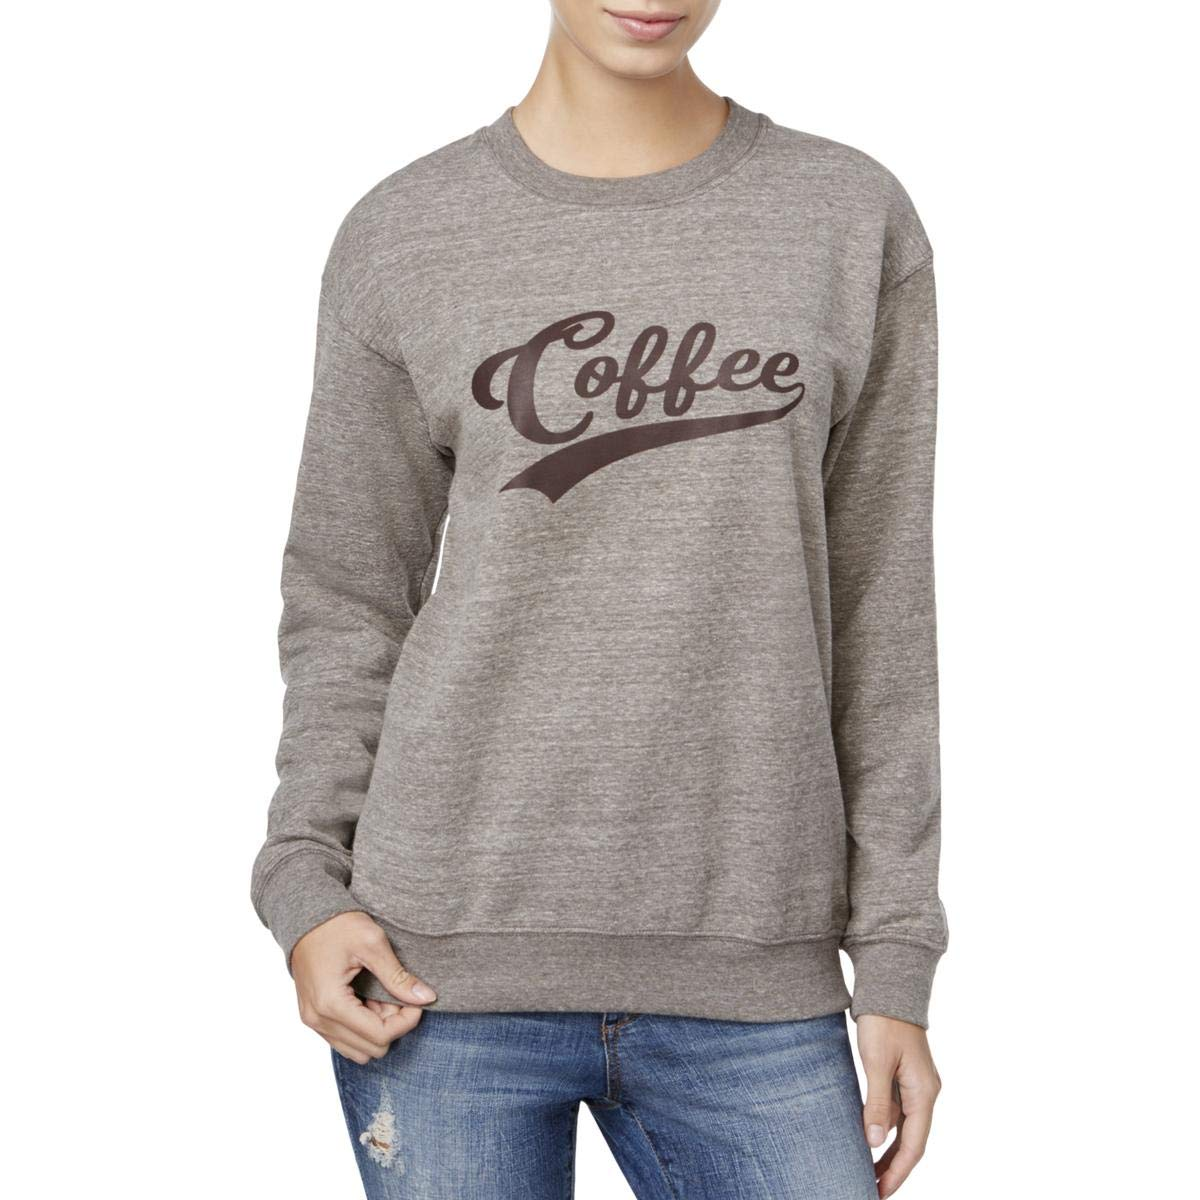 Suburban Riot Womens Coffee Fleece Graphic Sweatshirt Brown S